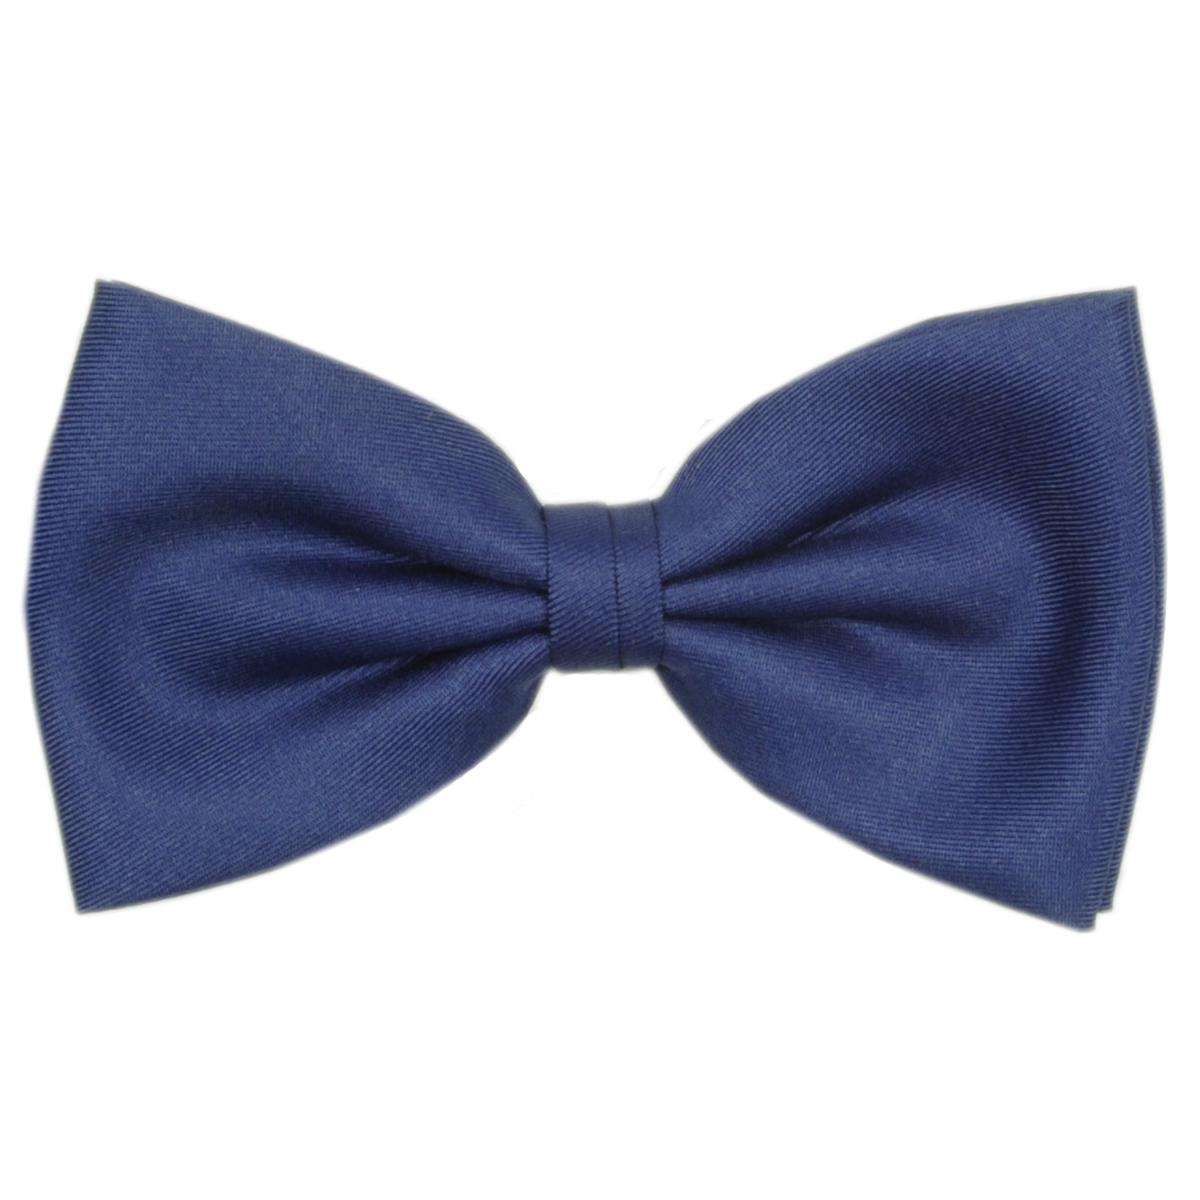 Dark Blue clipart bow tie With red Necktie Tie Blue